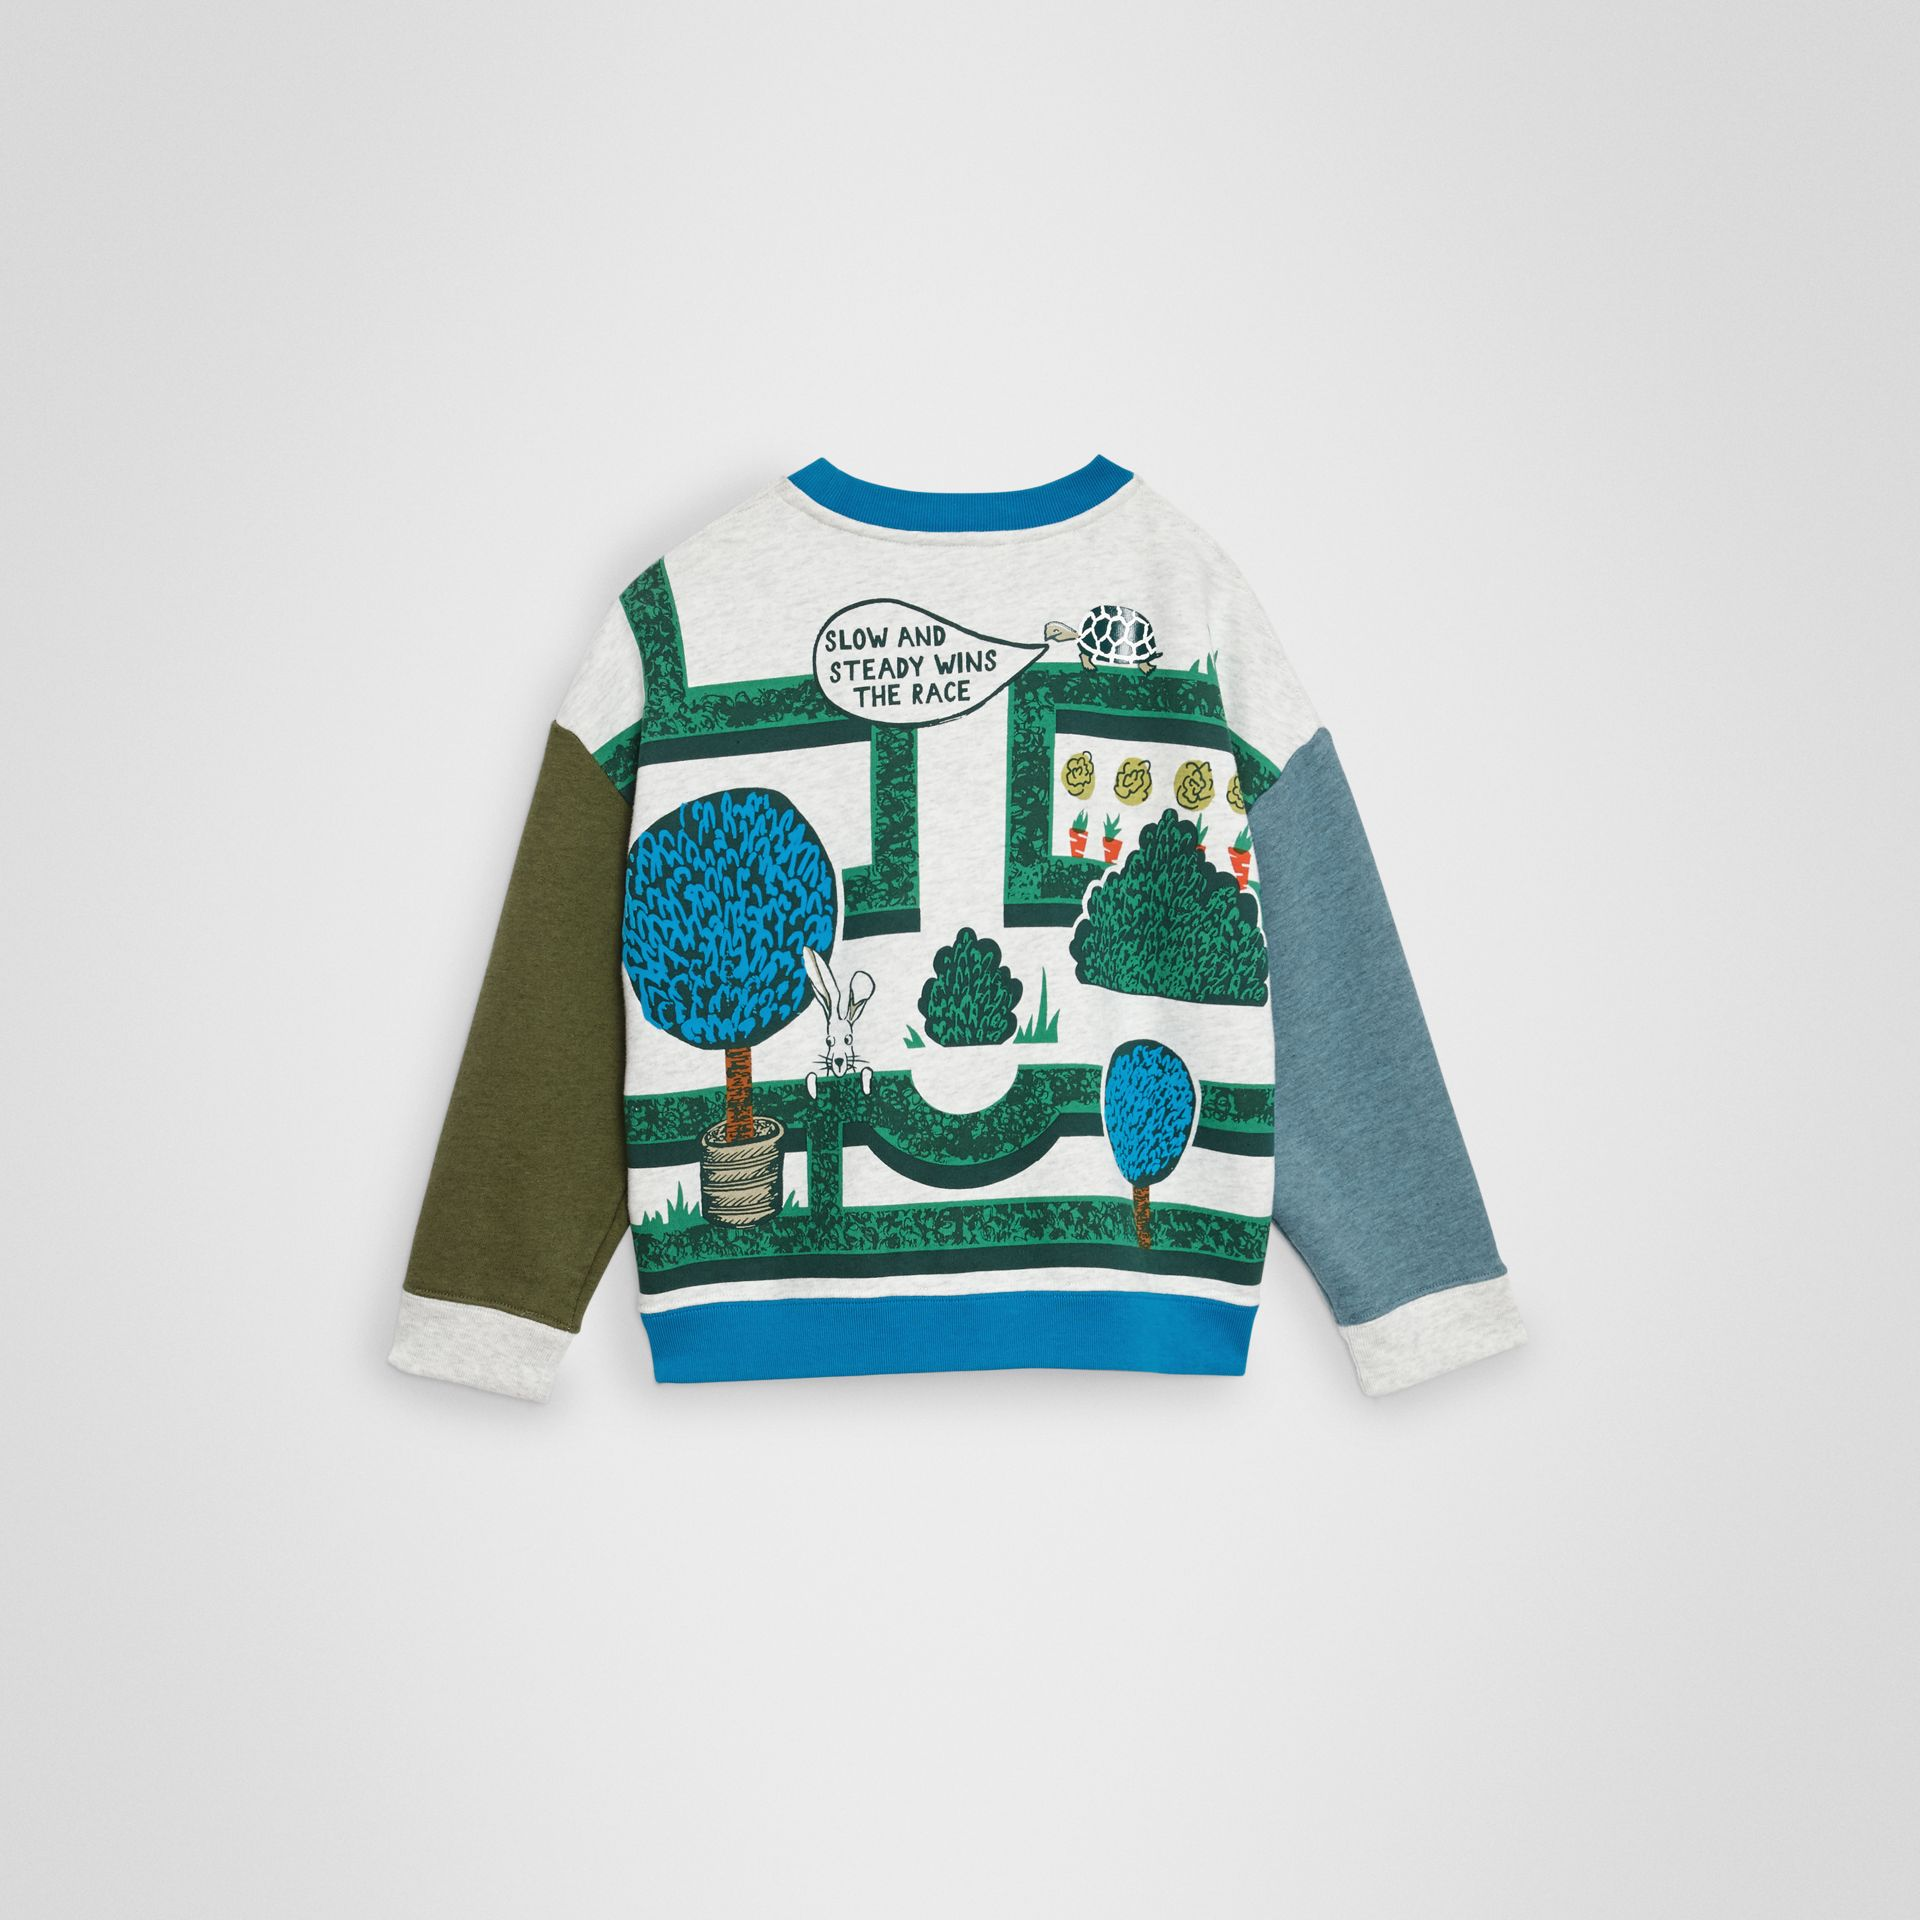 Hedge Maze Print Cotton Sweatshirt in Multicolour | Burberry - gallery image 4